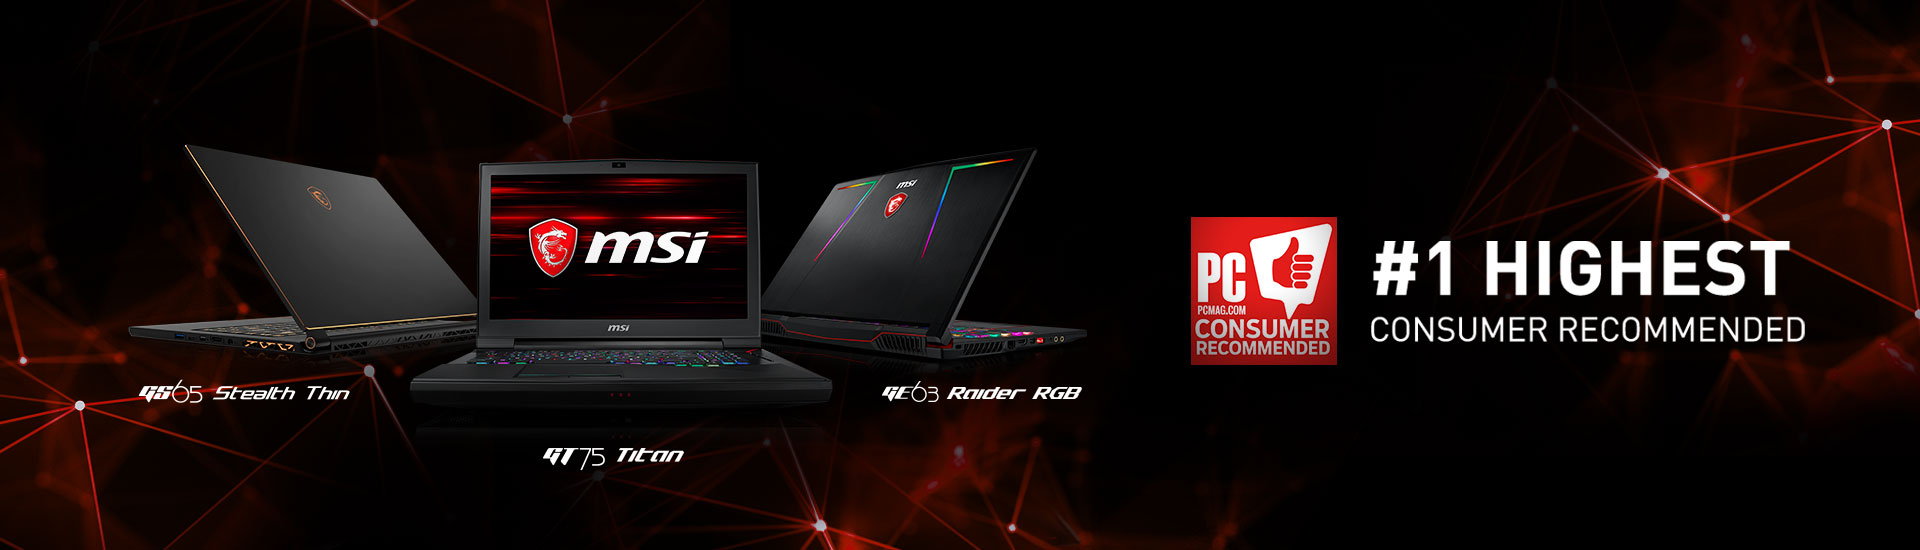 PC Mag Readers Choice